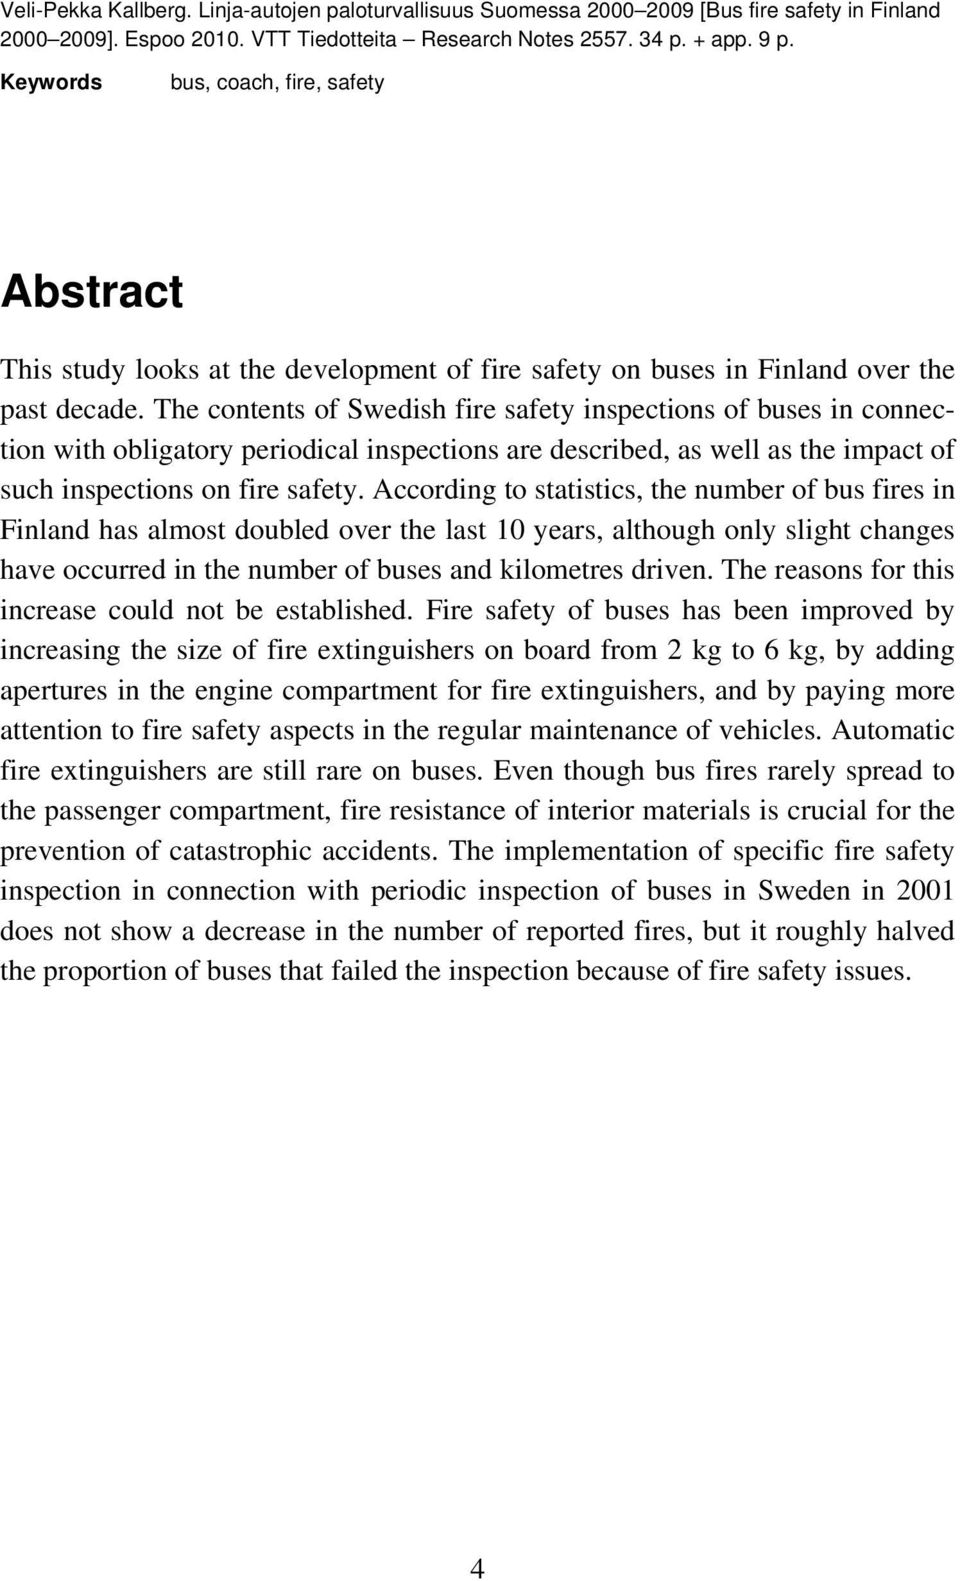 The contents of Swedish fire safety inspections of buses in connection with obligatory periodical inspections are described, as well as the impact of such inspections on fire safety.